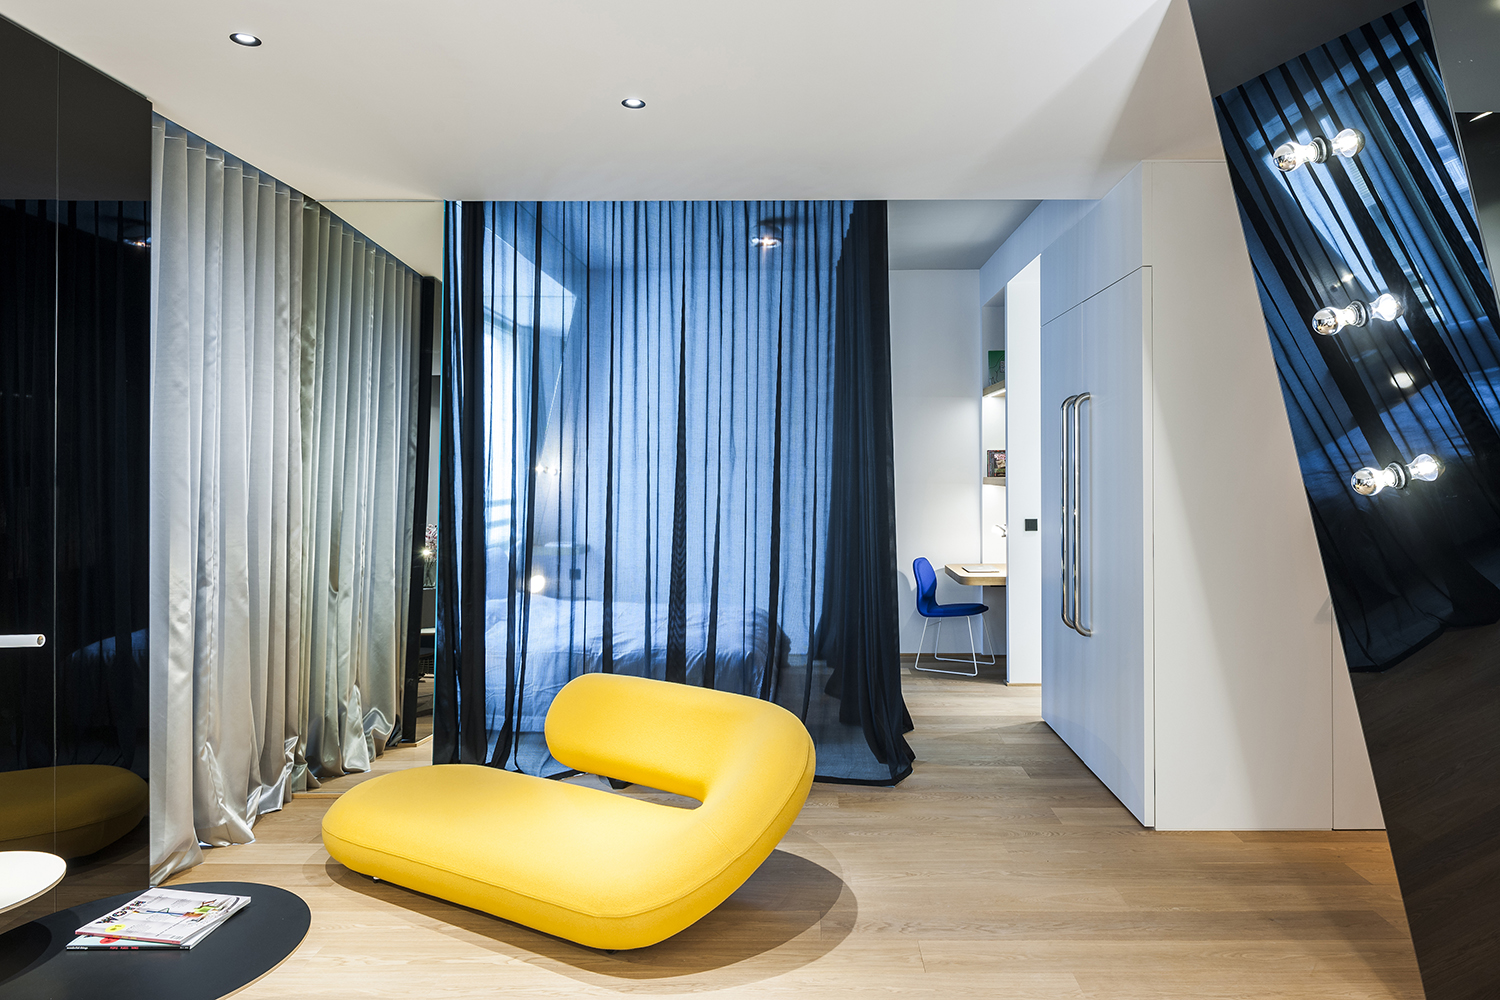 pied a terre_02small